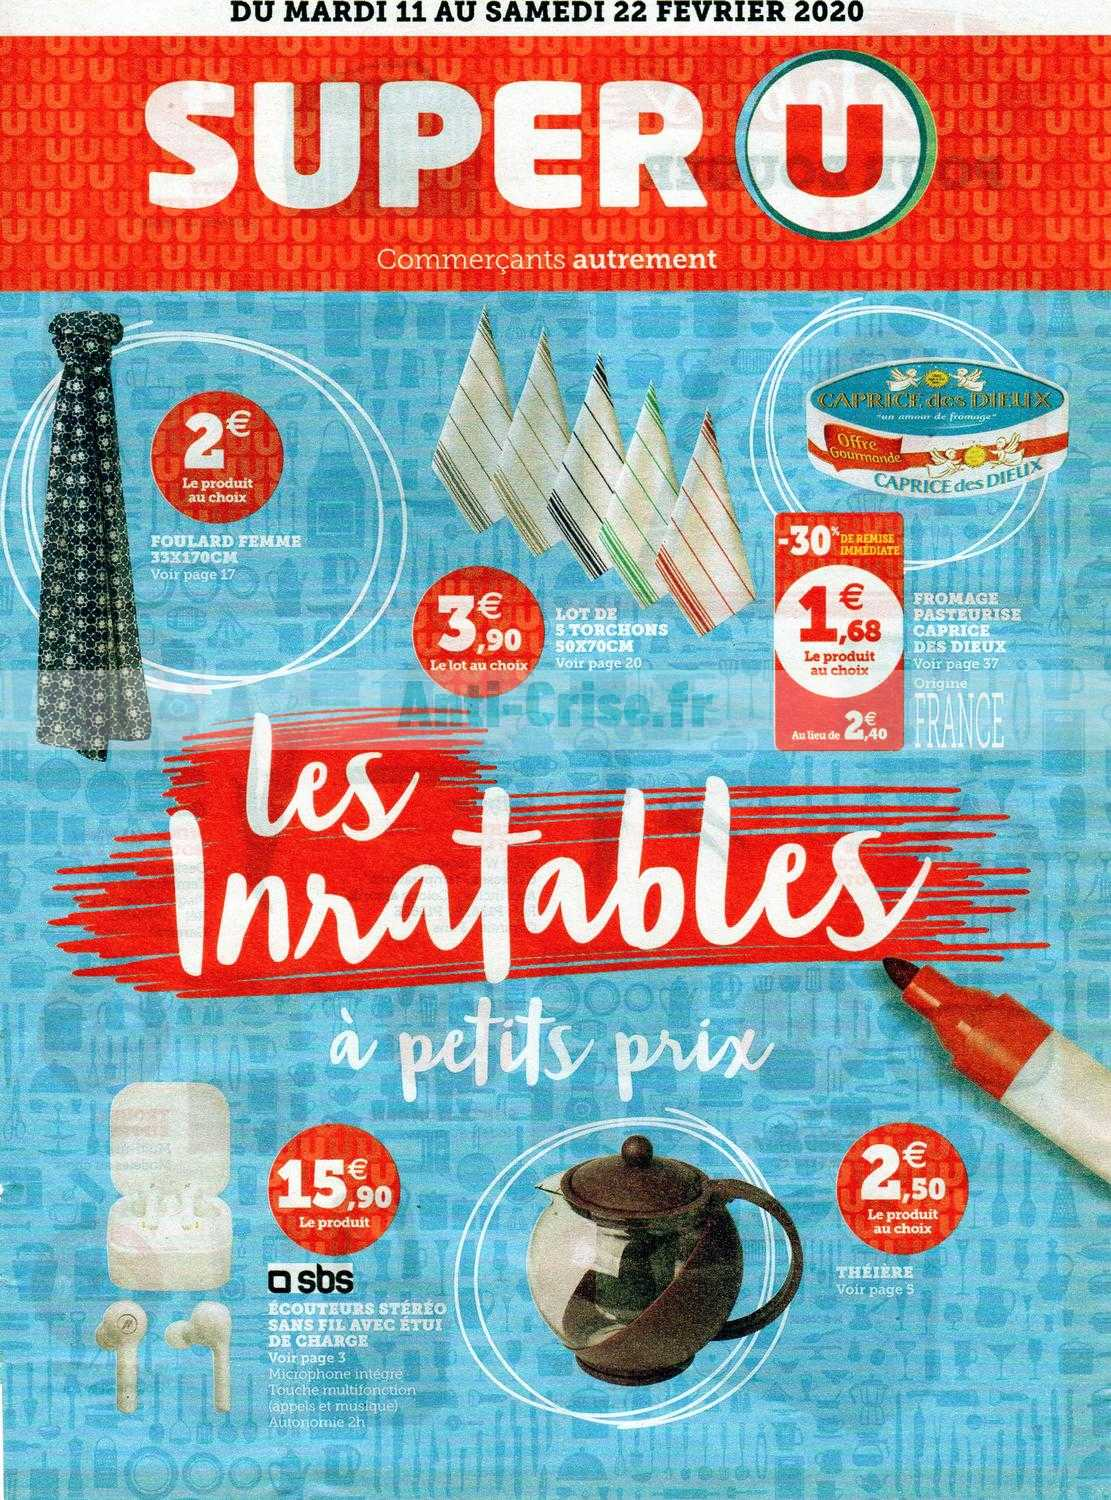 Catalogue Super U du 11 au 22 février 2020